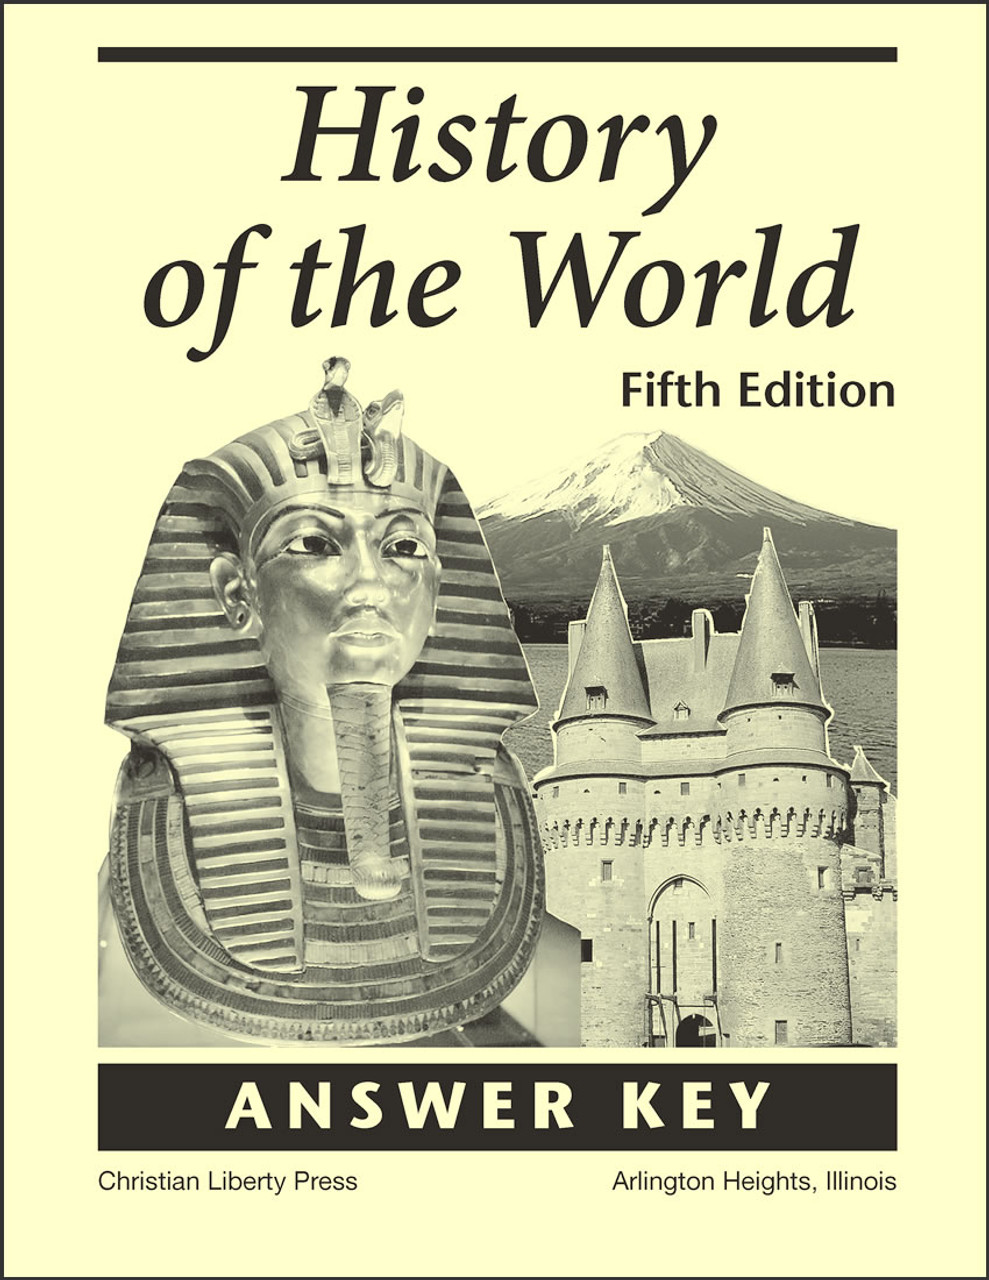 History of the World in Christian Perspective, 5th edition - Answer Key